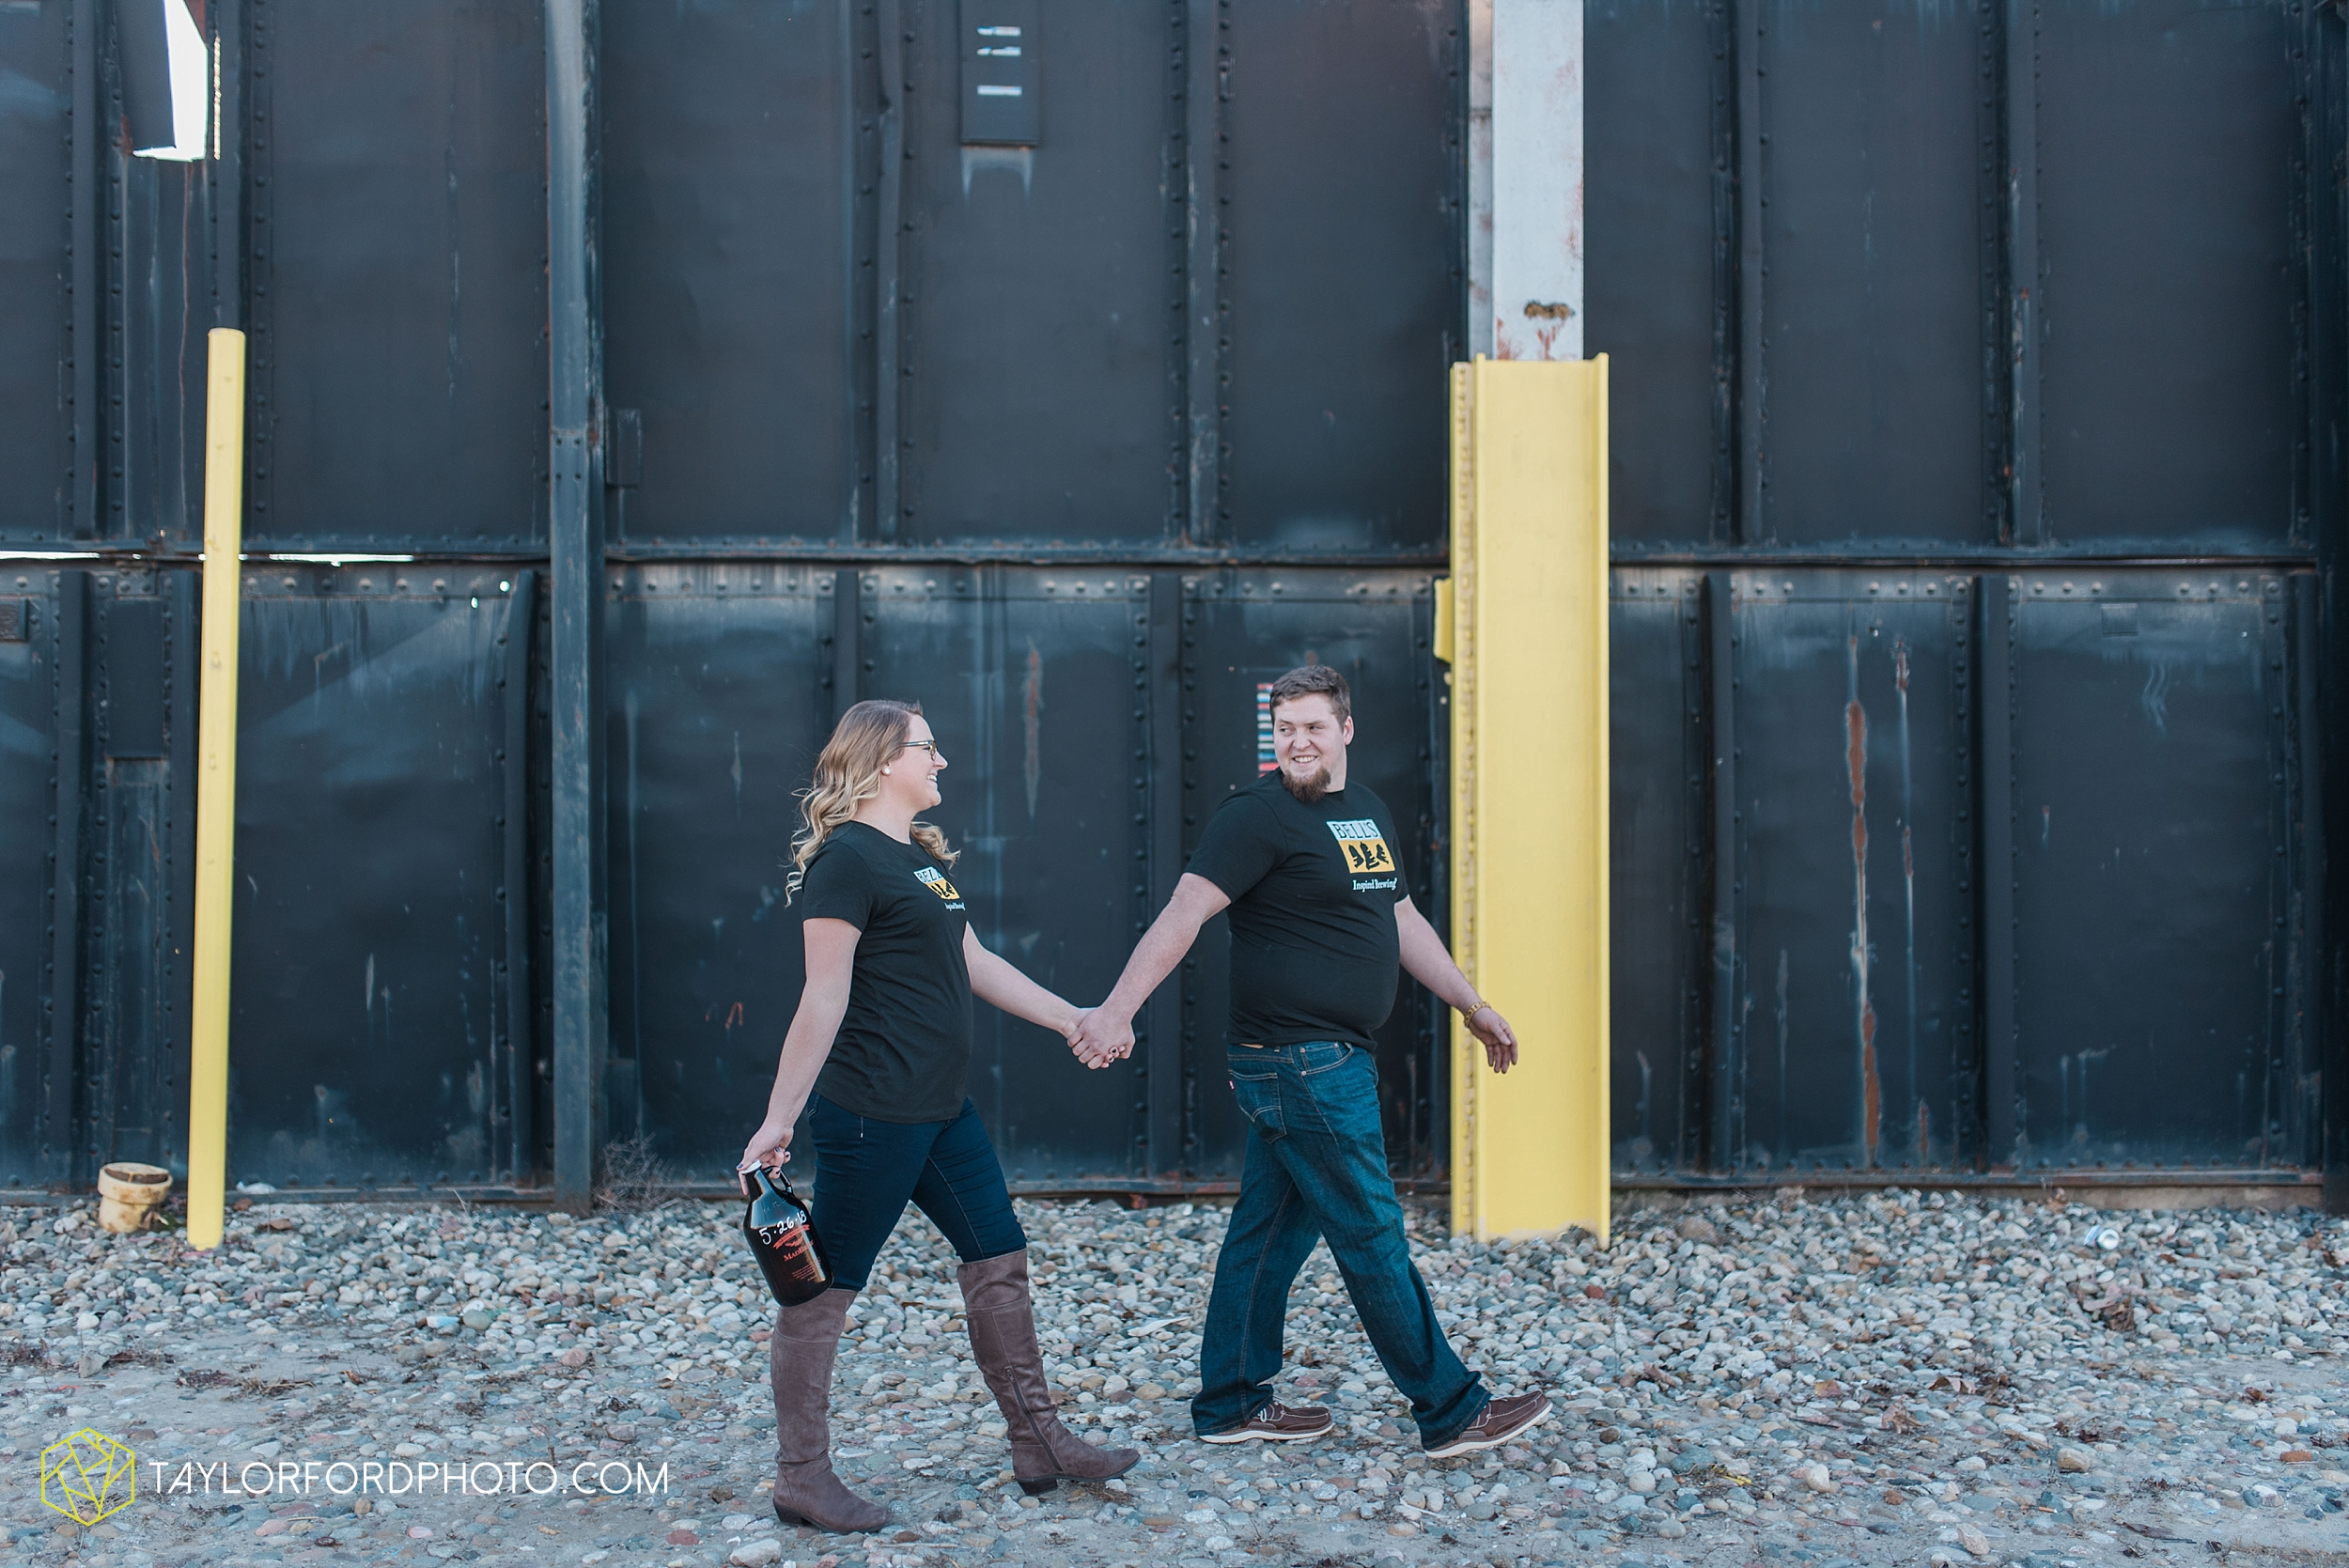 fort-wayne-new-haven-indiana-engagement-photographer-Taylor-Ford-Photography_5244.jpg